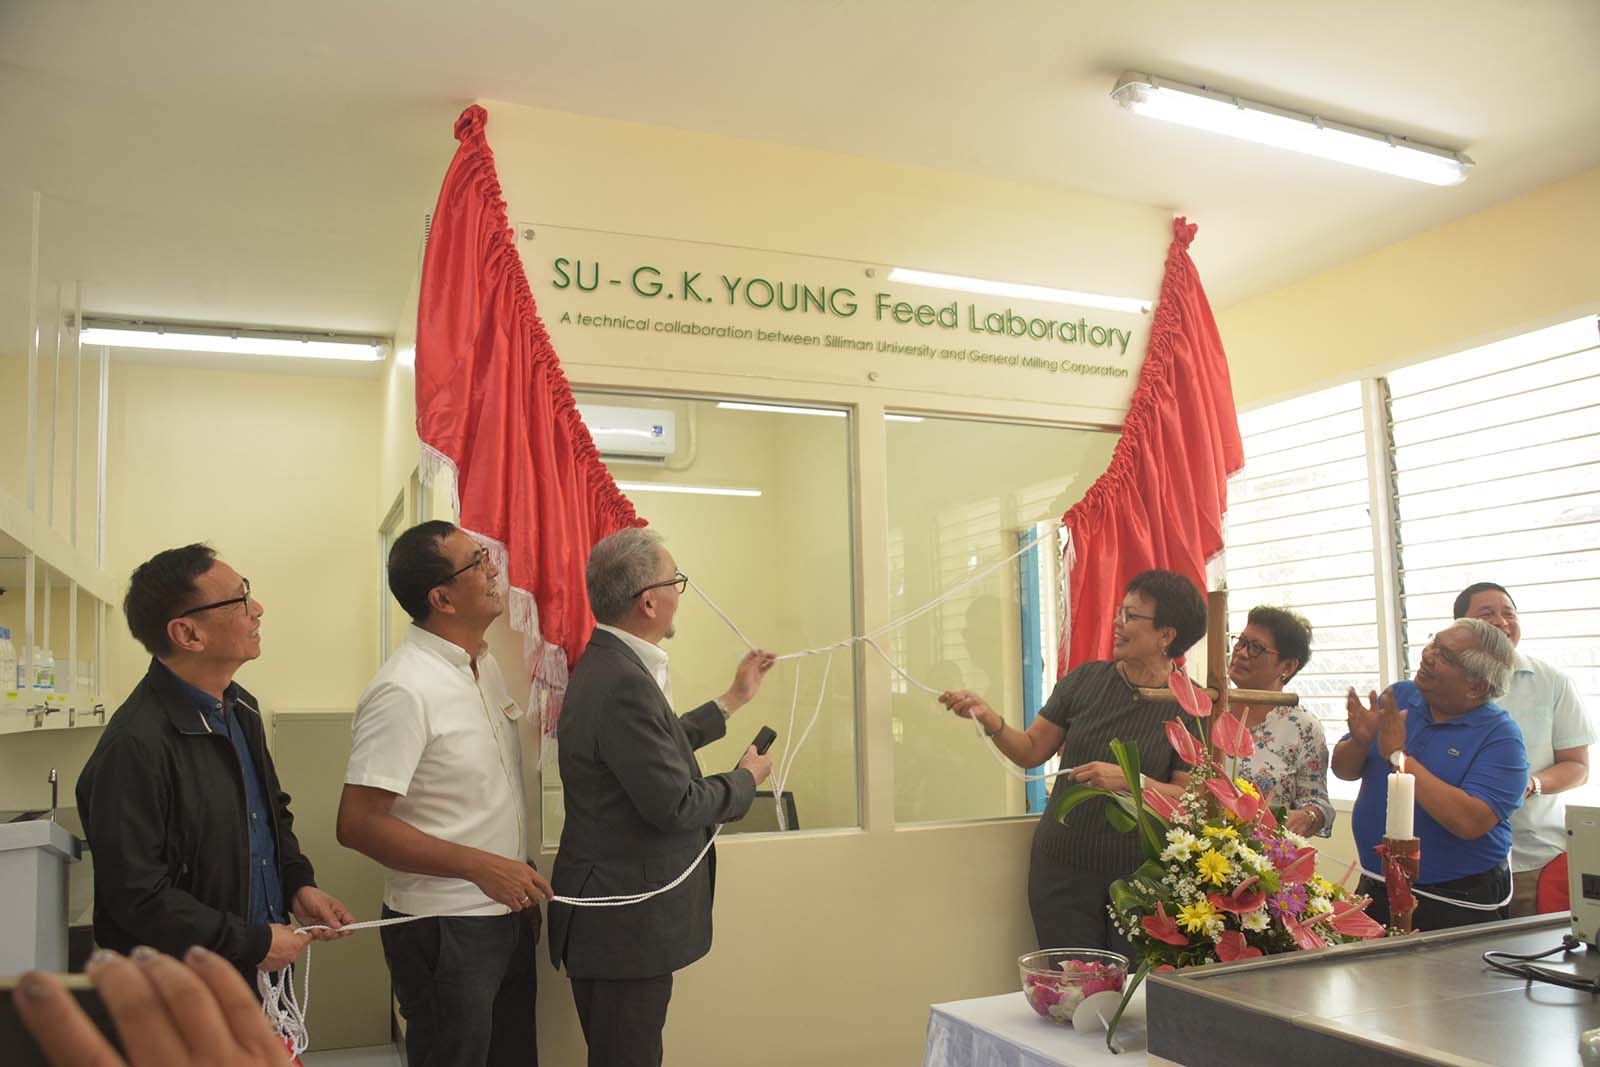 SU, General Milling Corp unveils feed lab